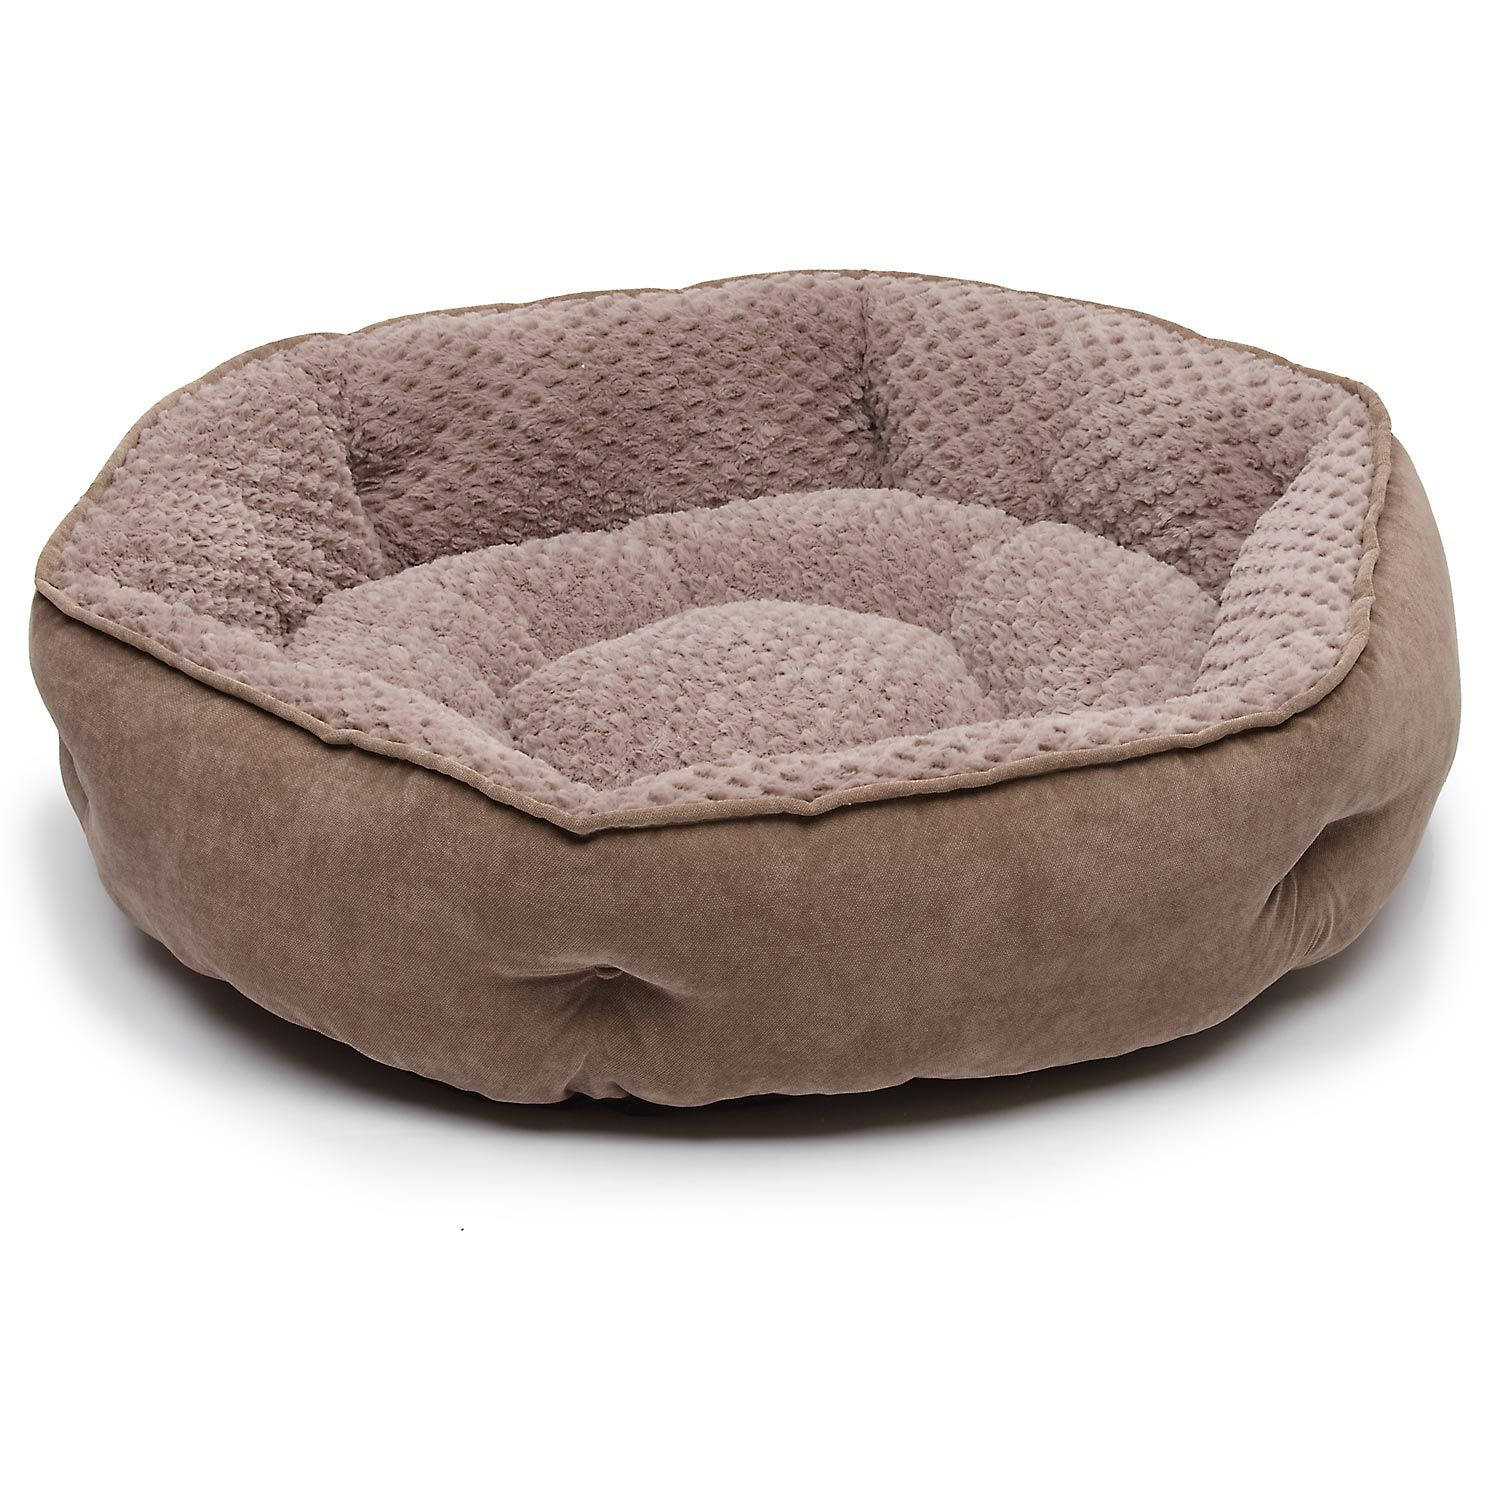 Petco Memory Foam Hexagonal Nest Dog Bed With Images Dog Bed